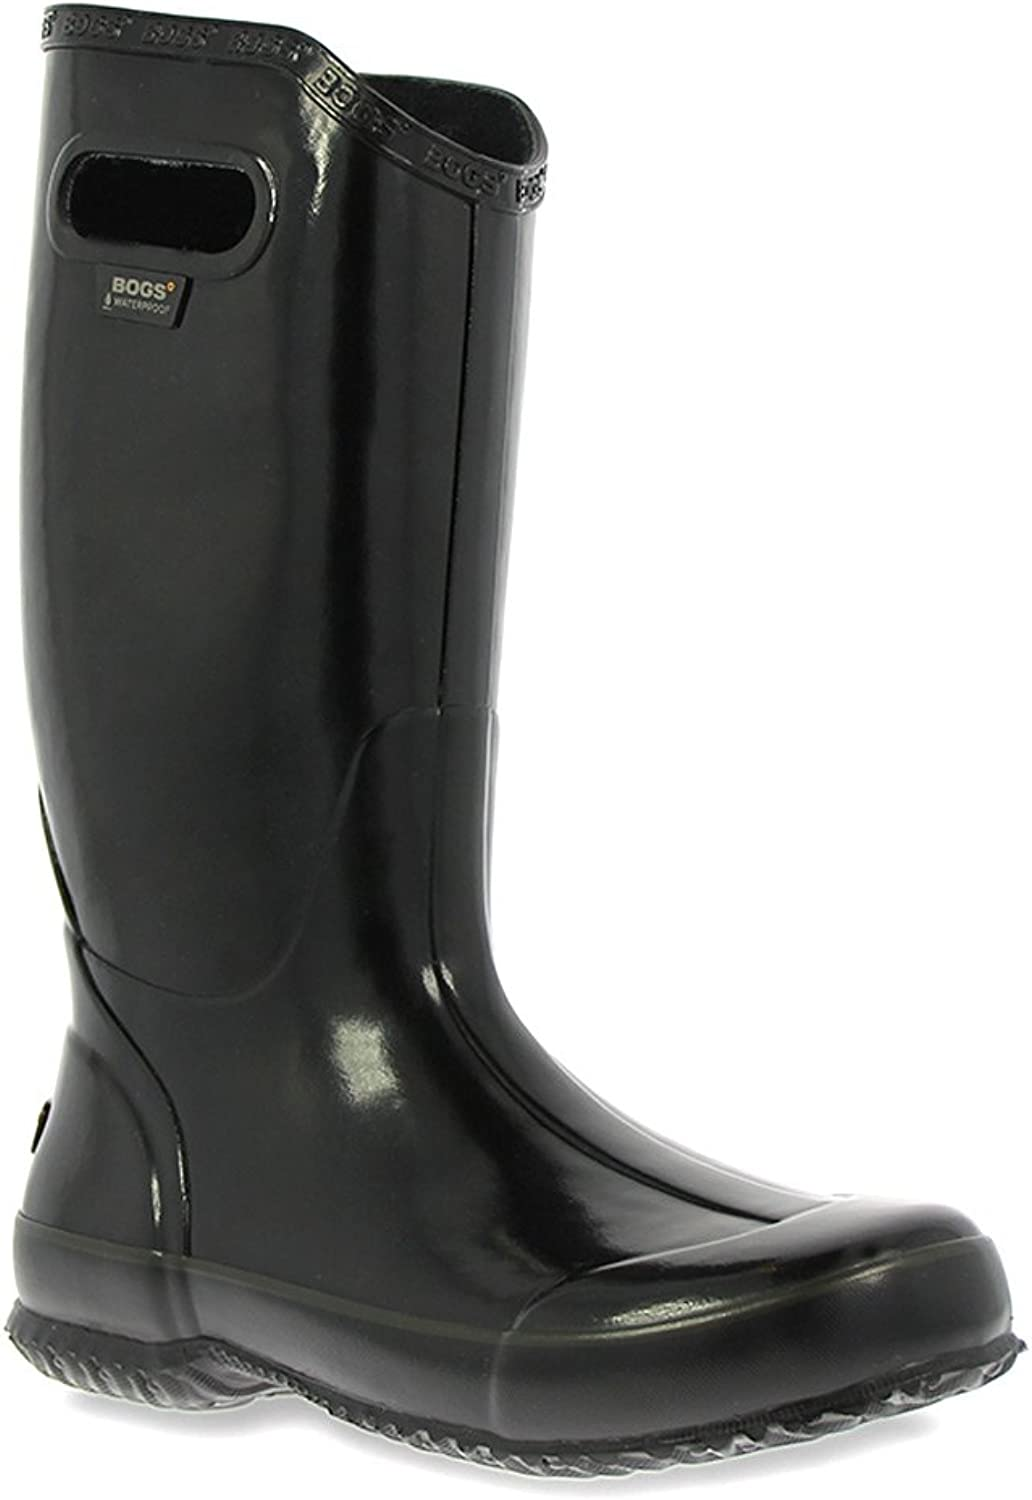 Rain Boot Solid black 6